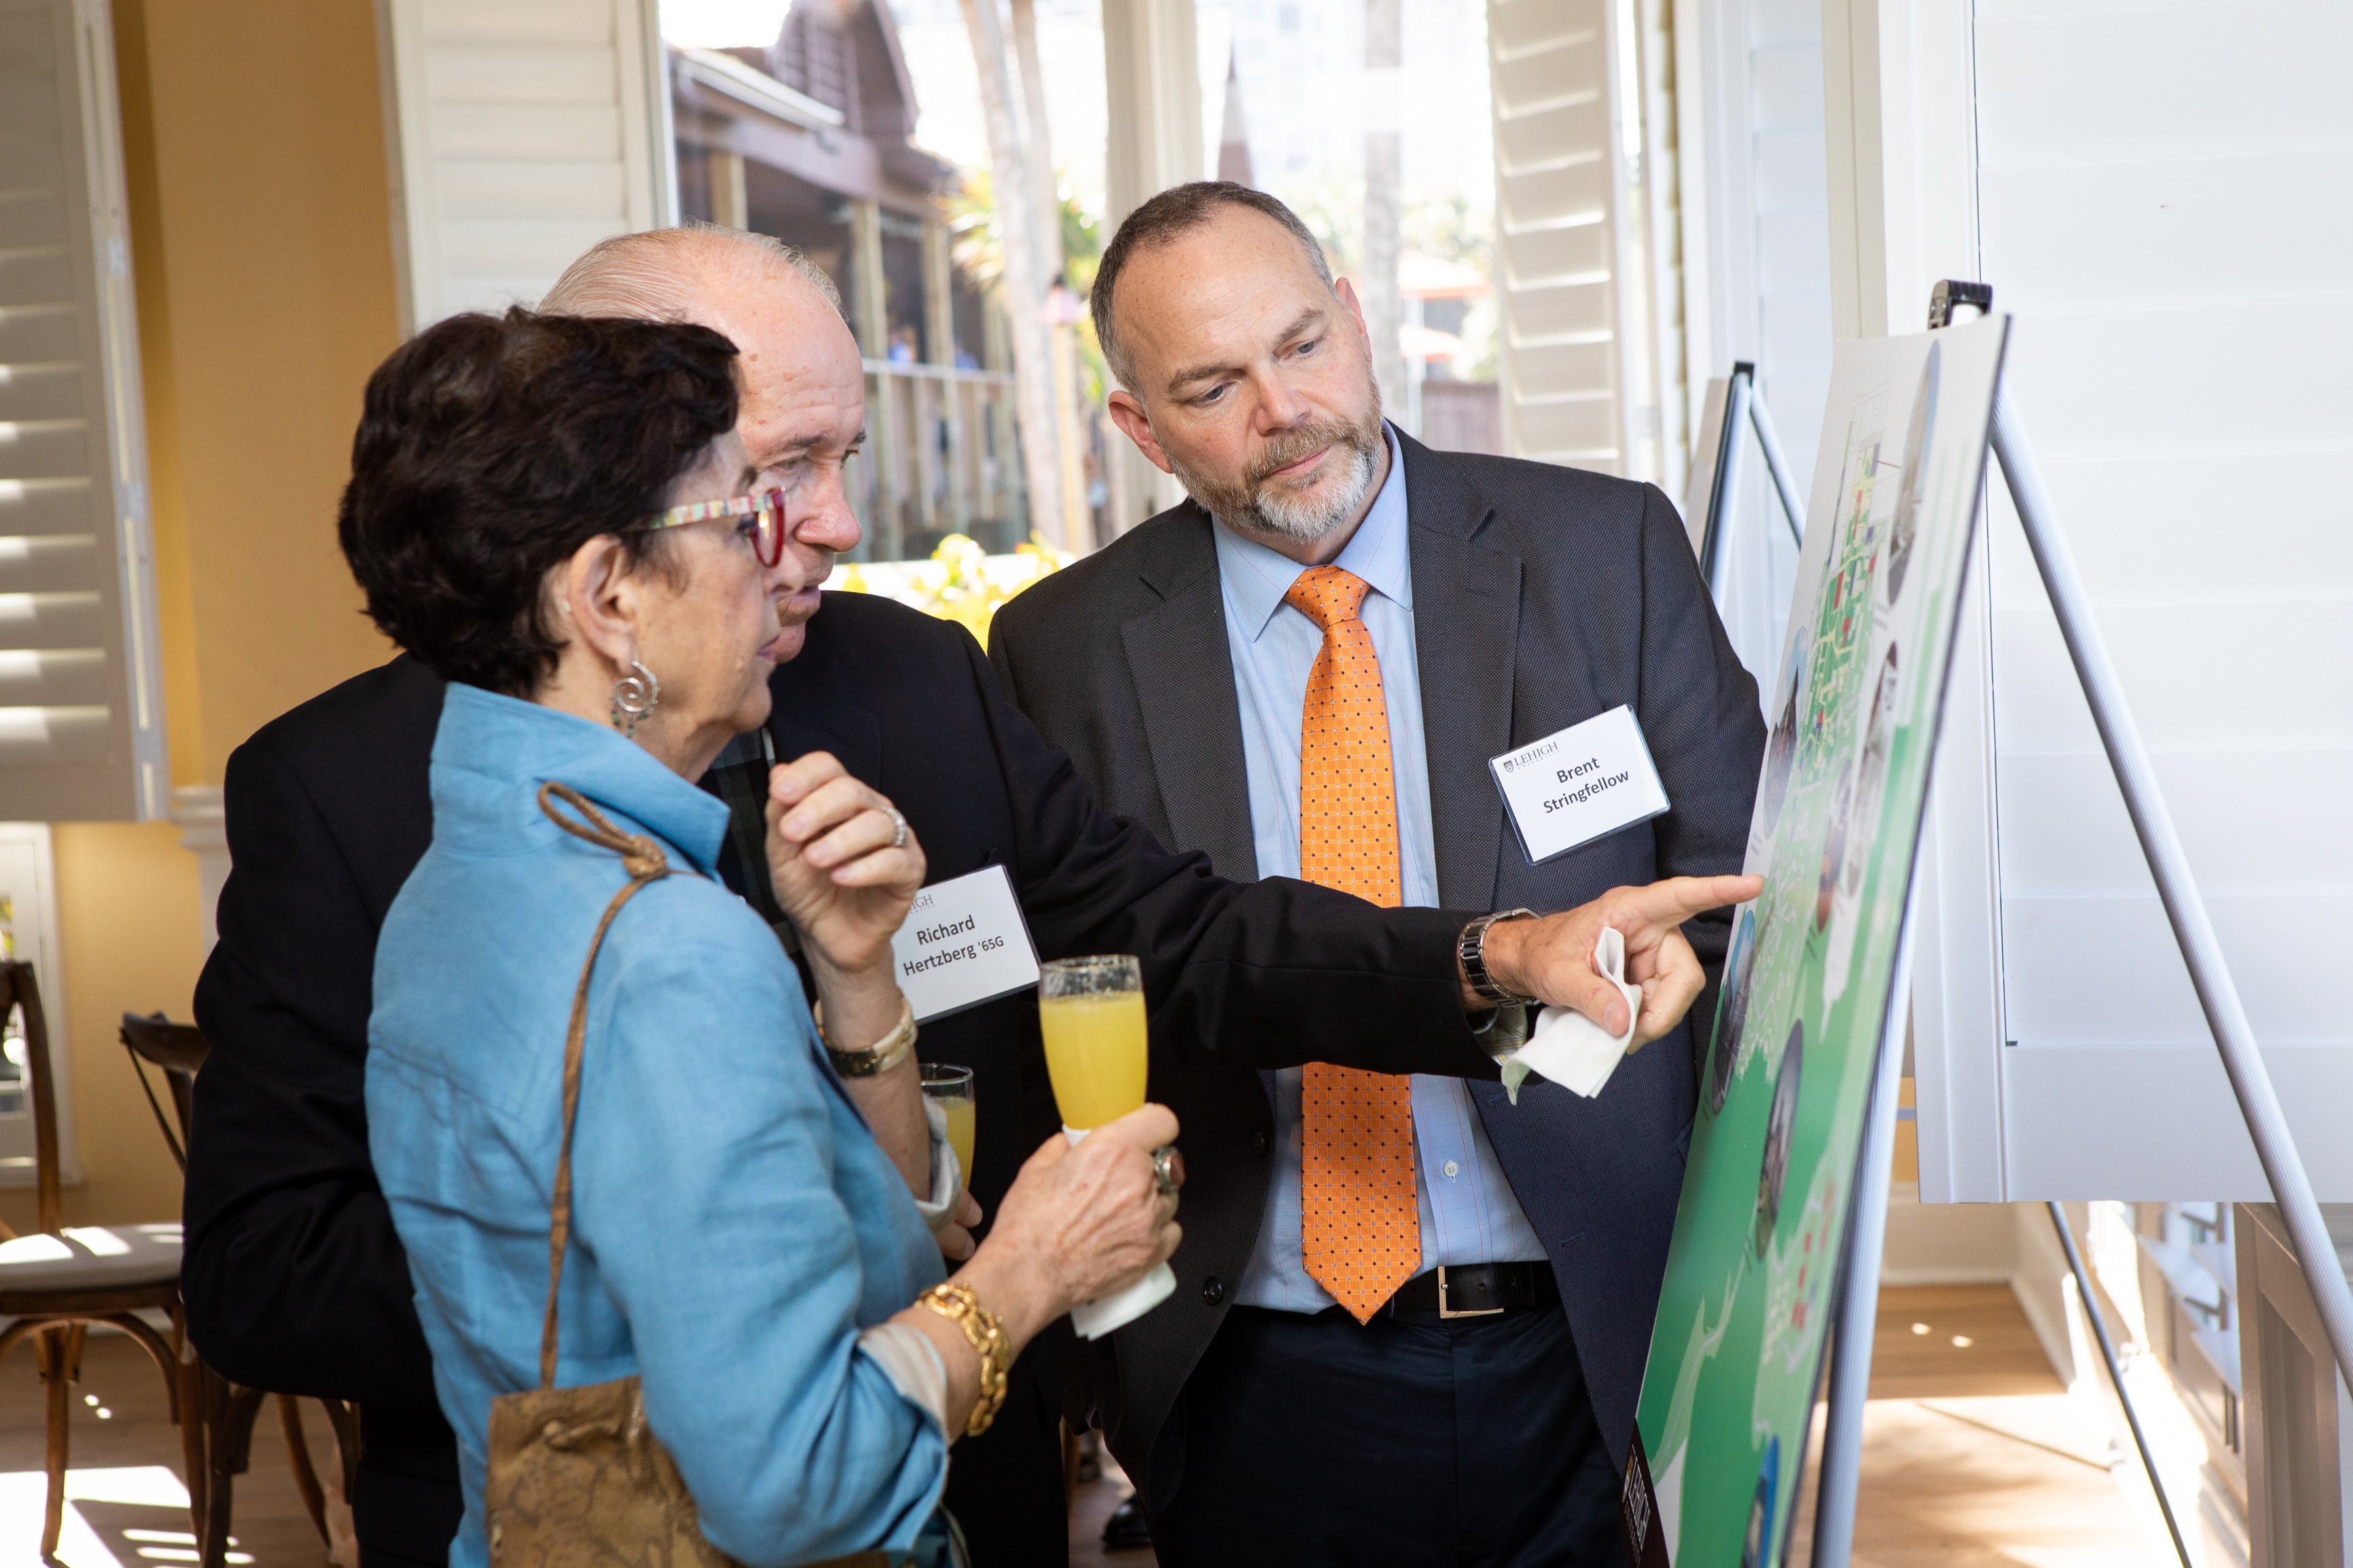 Linda and Richard Hertzberg '65G look over campus plans with Brent Stringfellow, associate vice president for facilities services and university architect, at the Tower Society event in Naples, Florida.